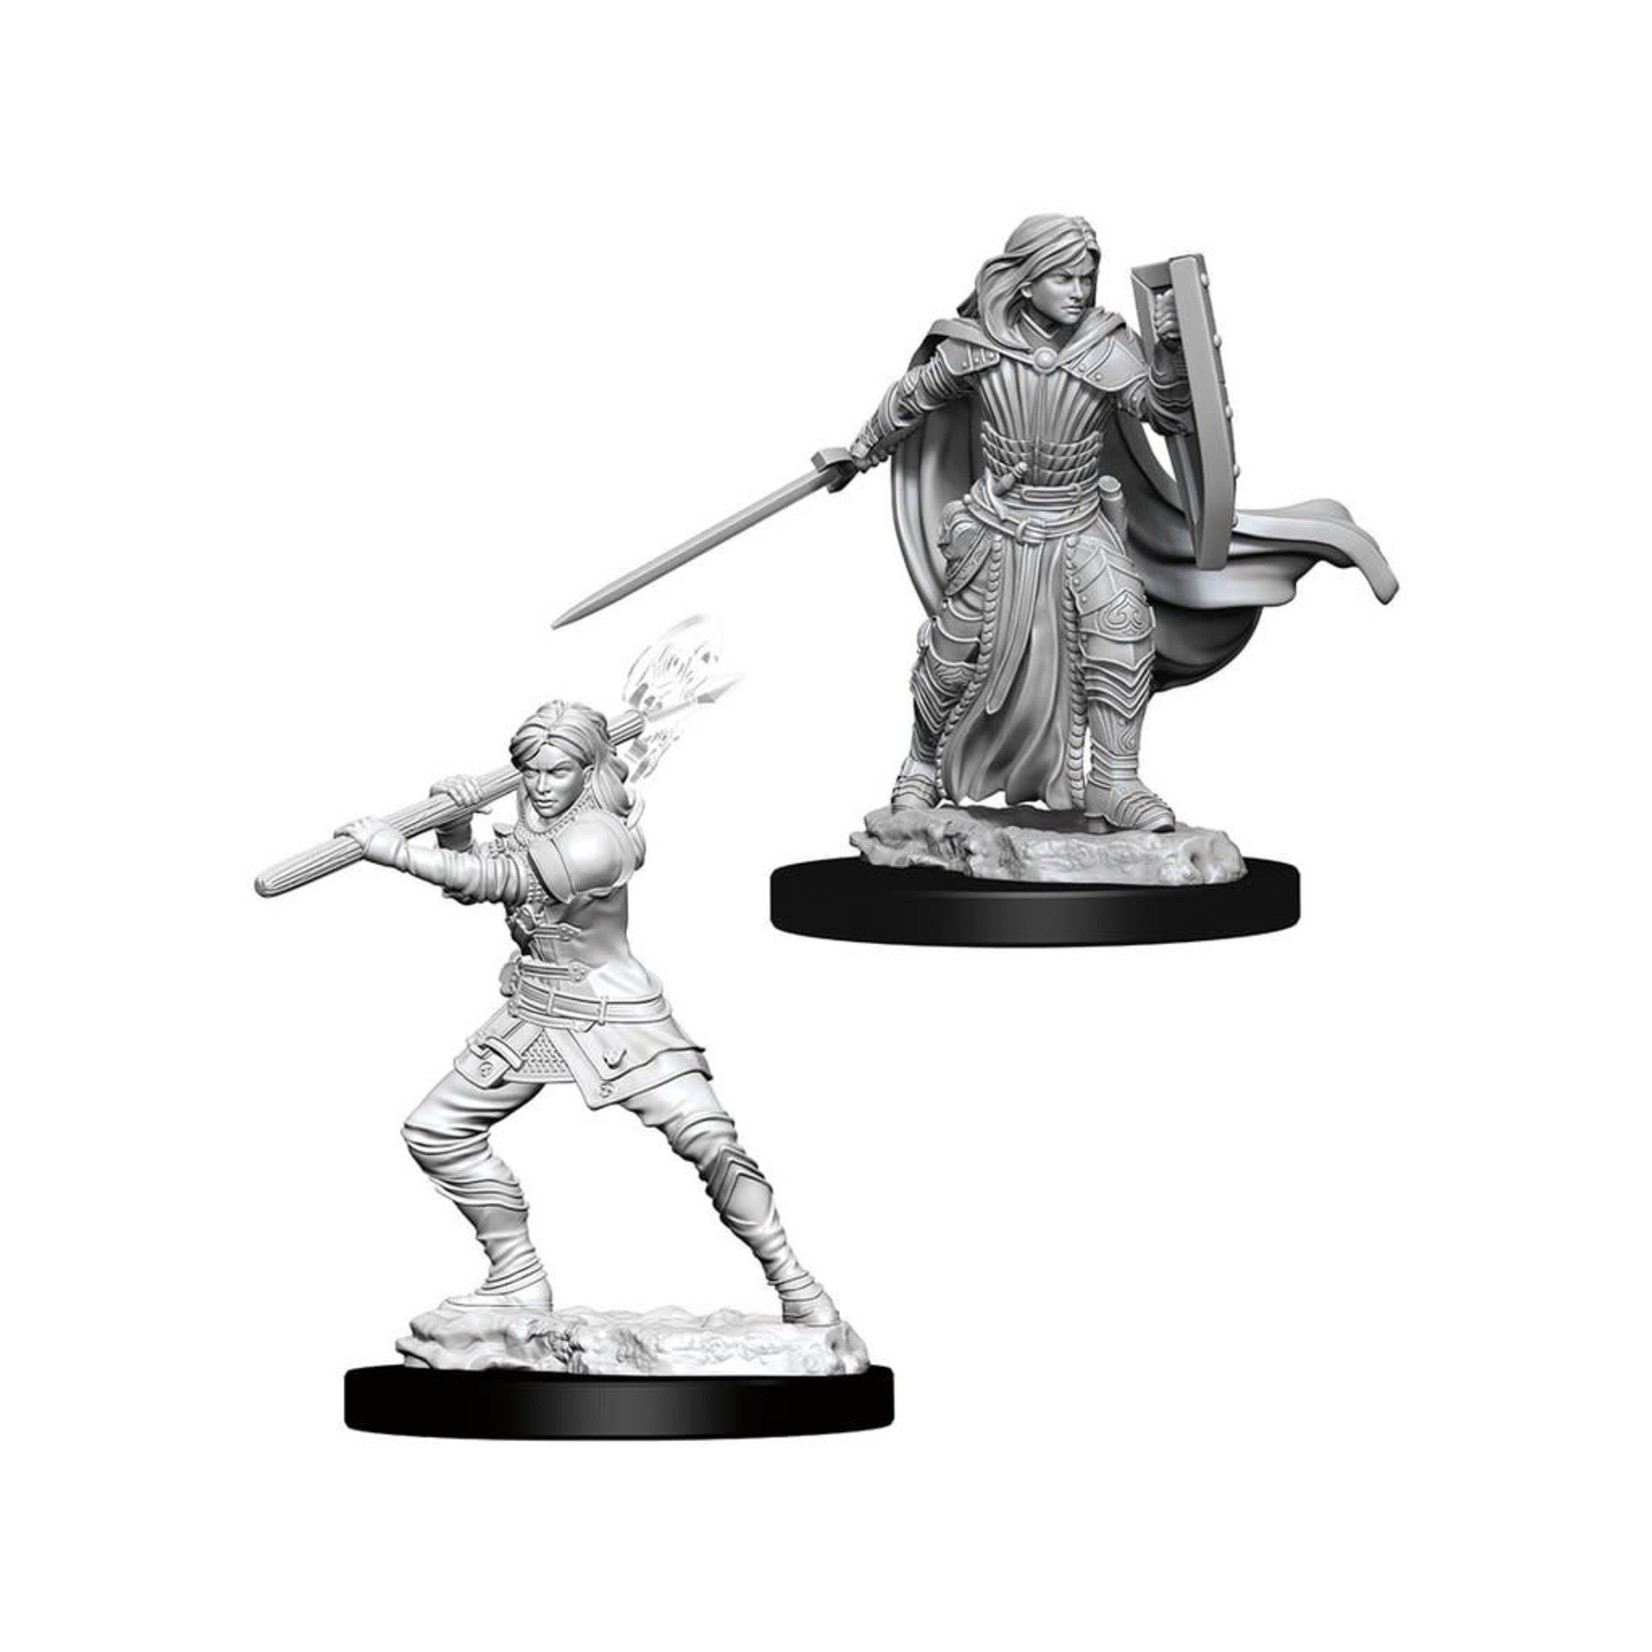 WizKids Dungeons & Dragons Nolzur's Marvelous Miniatures: Female Human Paladin